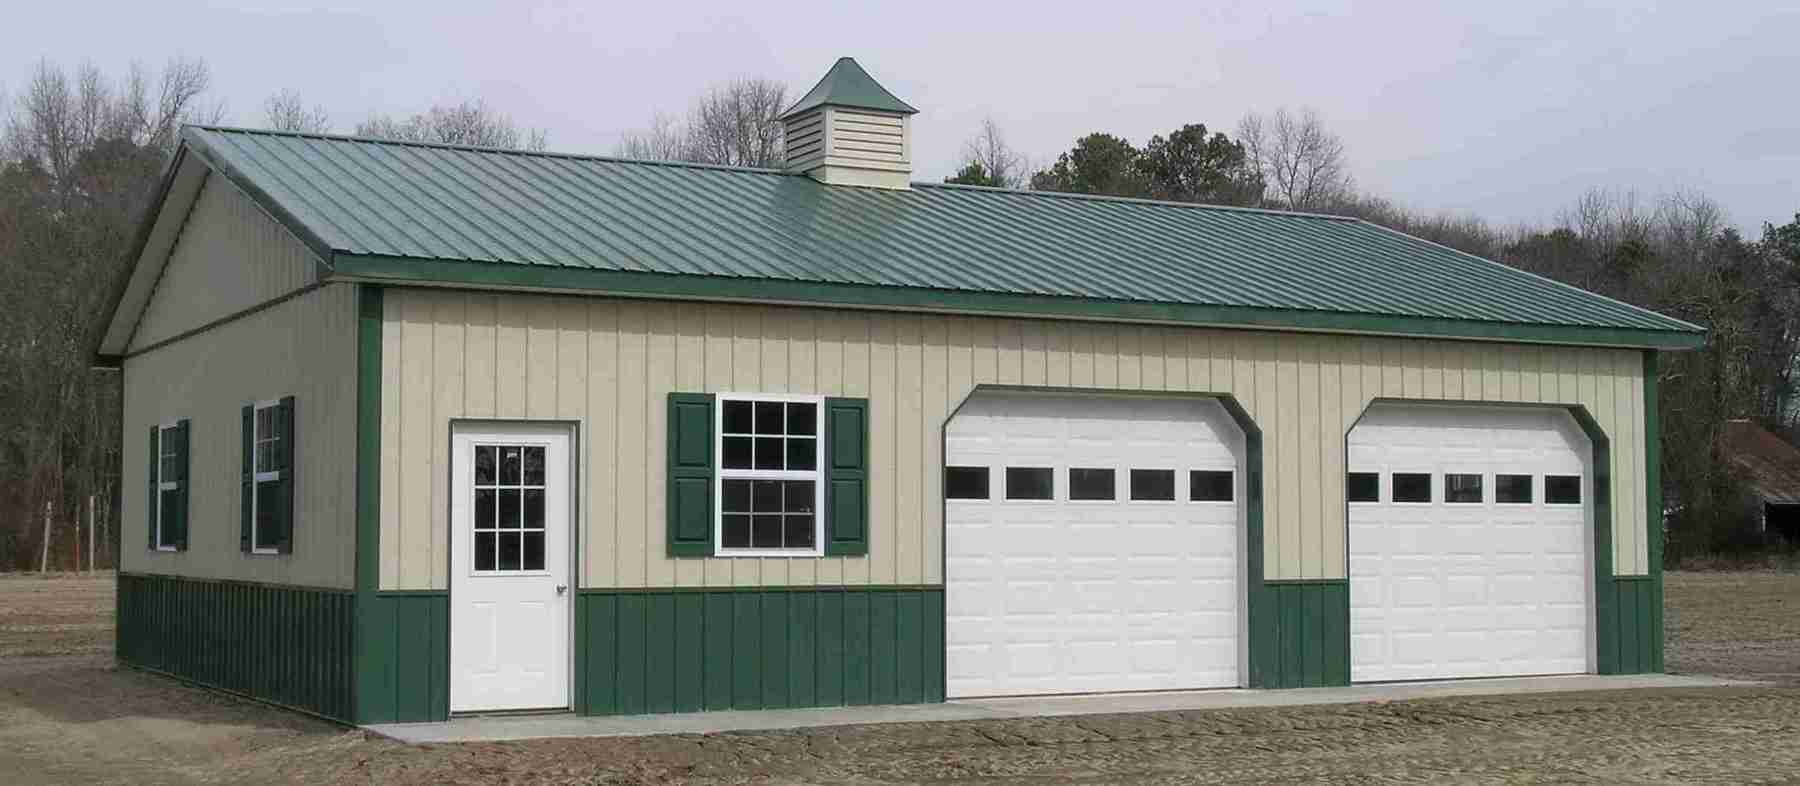 Pole barn garage kits 101 metal building homes for Design your own pole barn